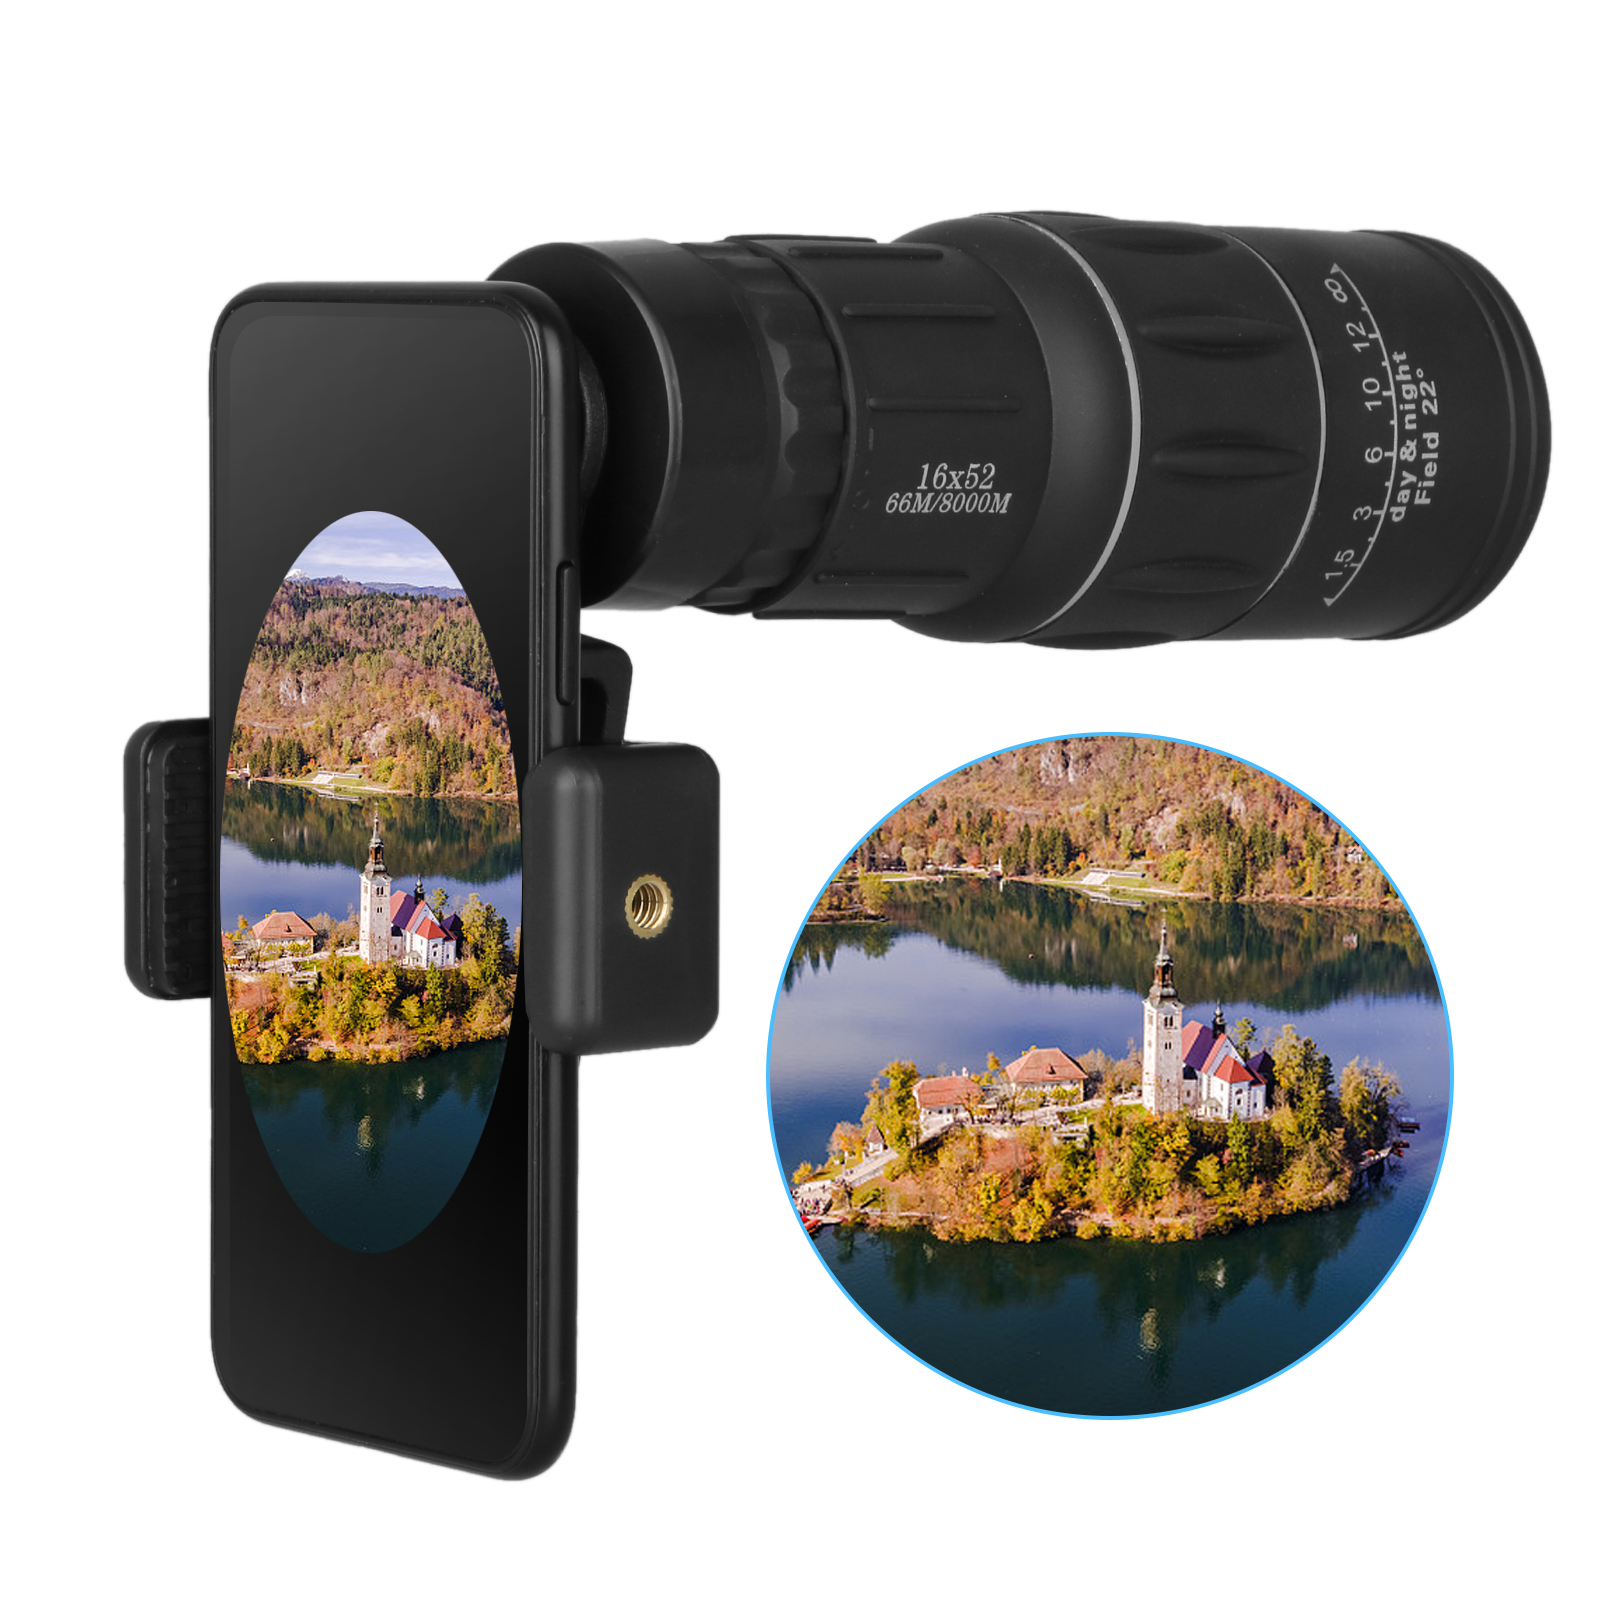 Cellphone Monocular telescope, EEEkit High-definition 16 x 52 mm zoom, Dual Focusing, Retractable Eyepiece with Universal Quick Smartphone Holder, for Sports, Hunting, Camping, Travelling, Wildlife